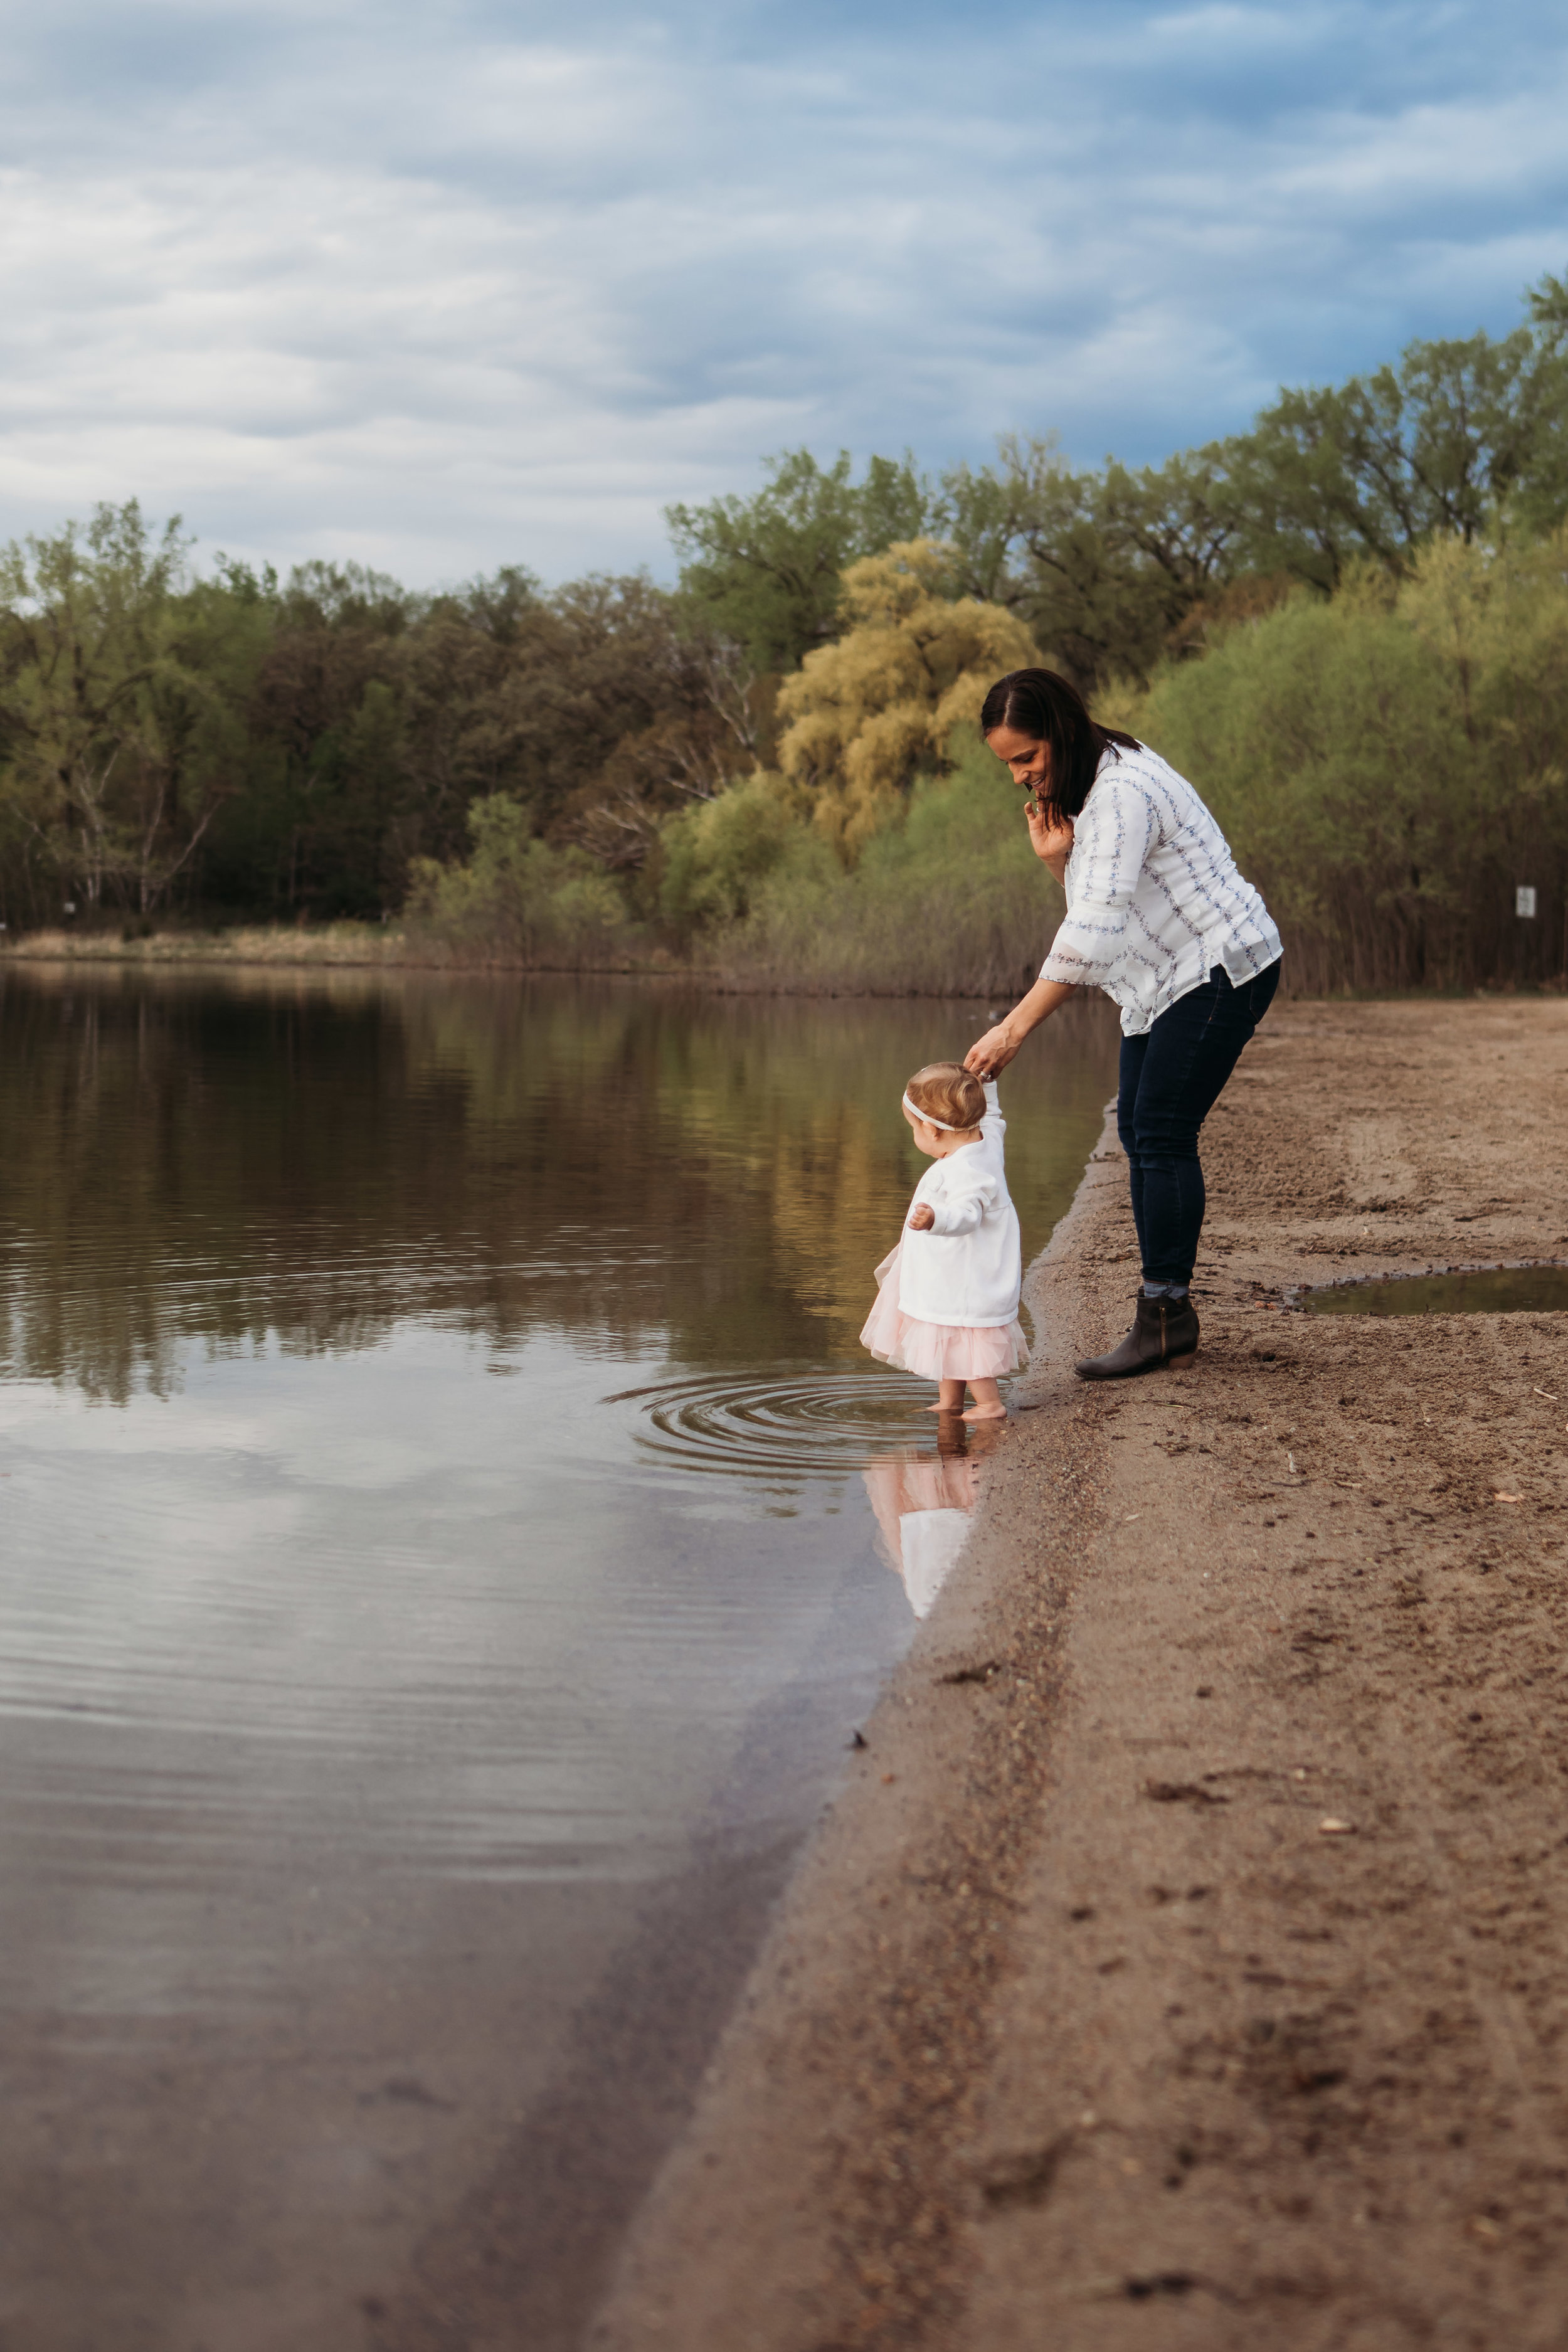 baby girl in pink walking in the water of lake - AMG Photography